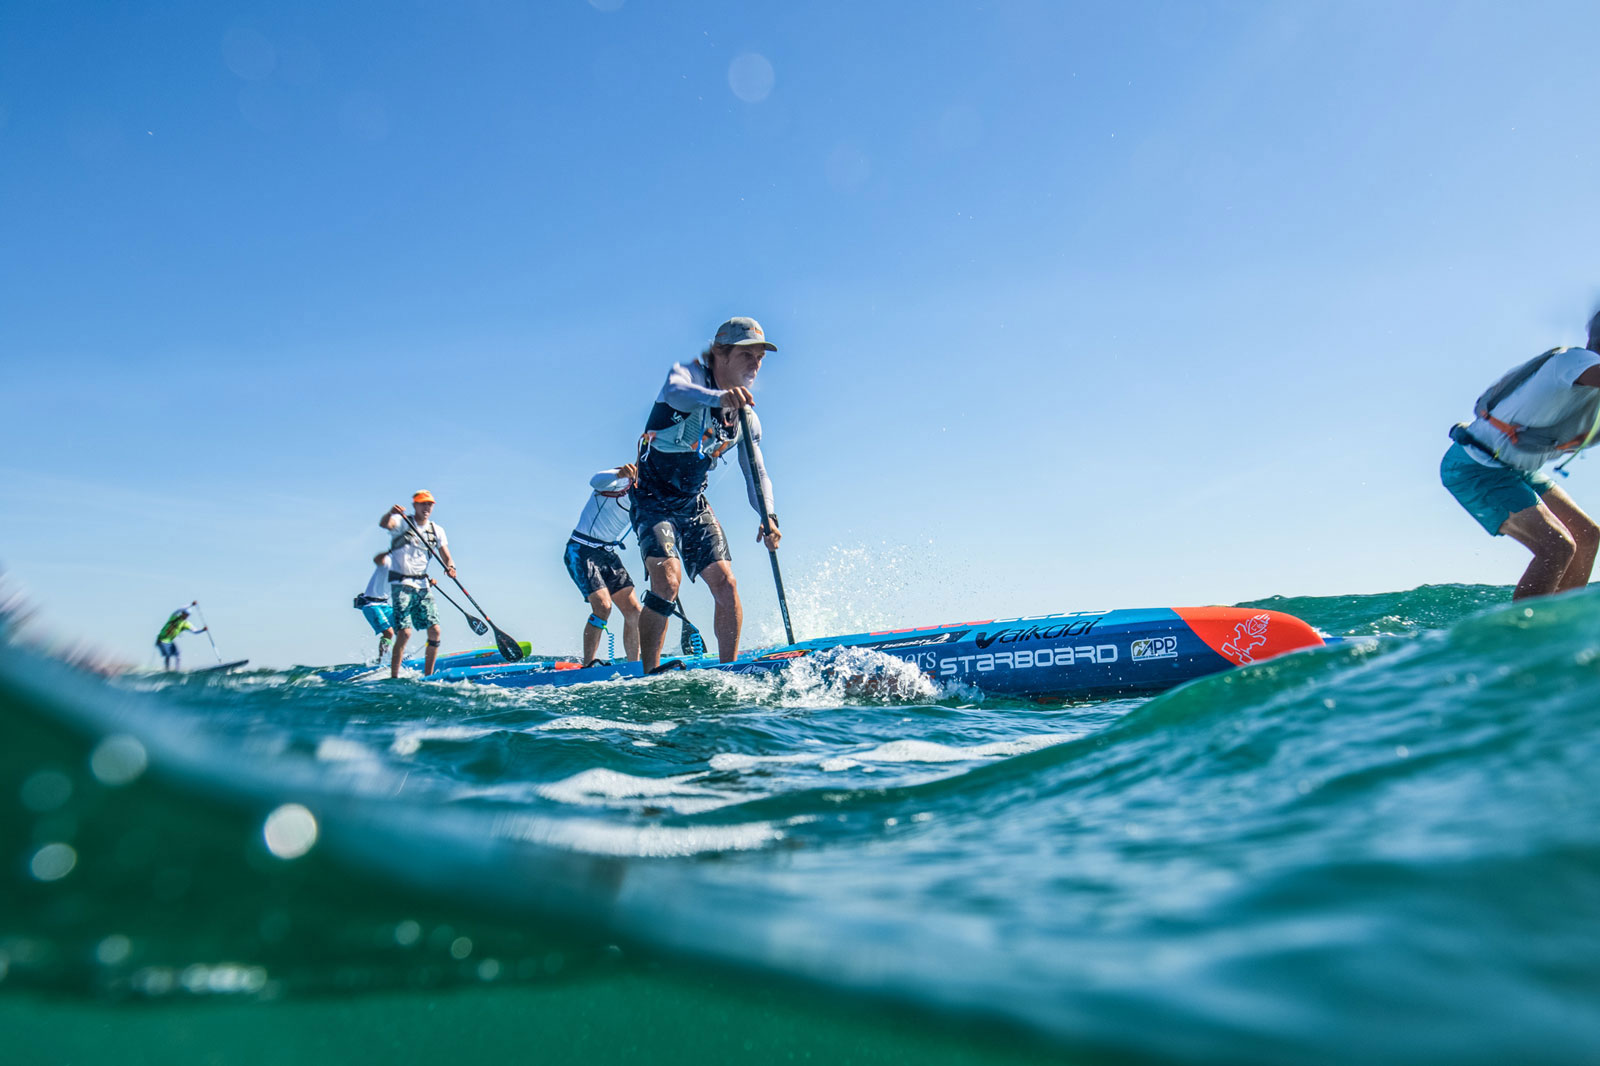 Michael-Booth-Set-to-Defend-Carolina-Cup-SUP-Race-Title-2019-Georgia-water-view